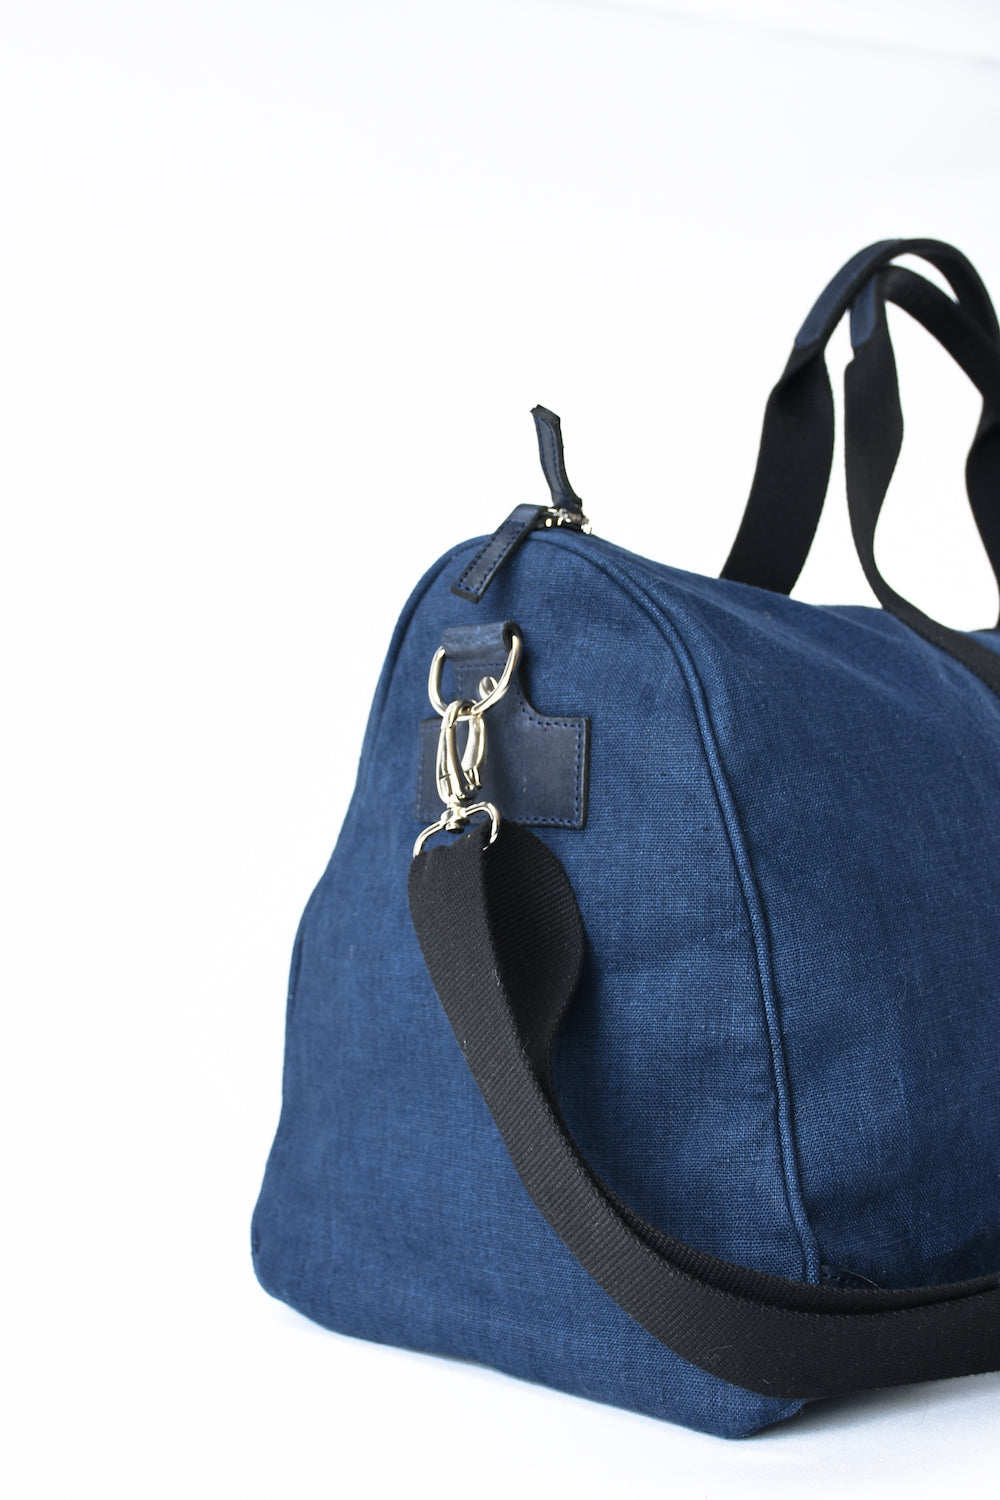 Jean The 48H Navy Travel Bag Maison Jeanne - Weekender Maison Jeanne